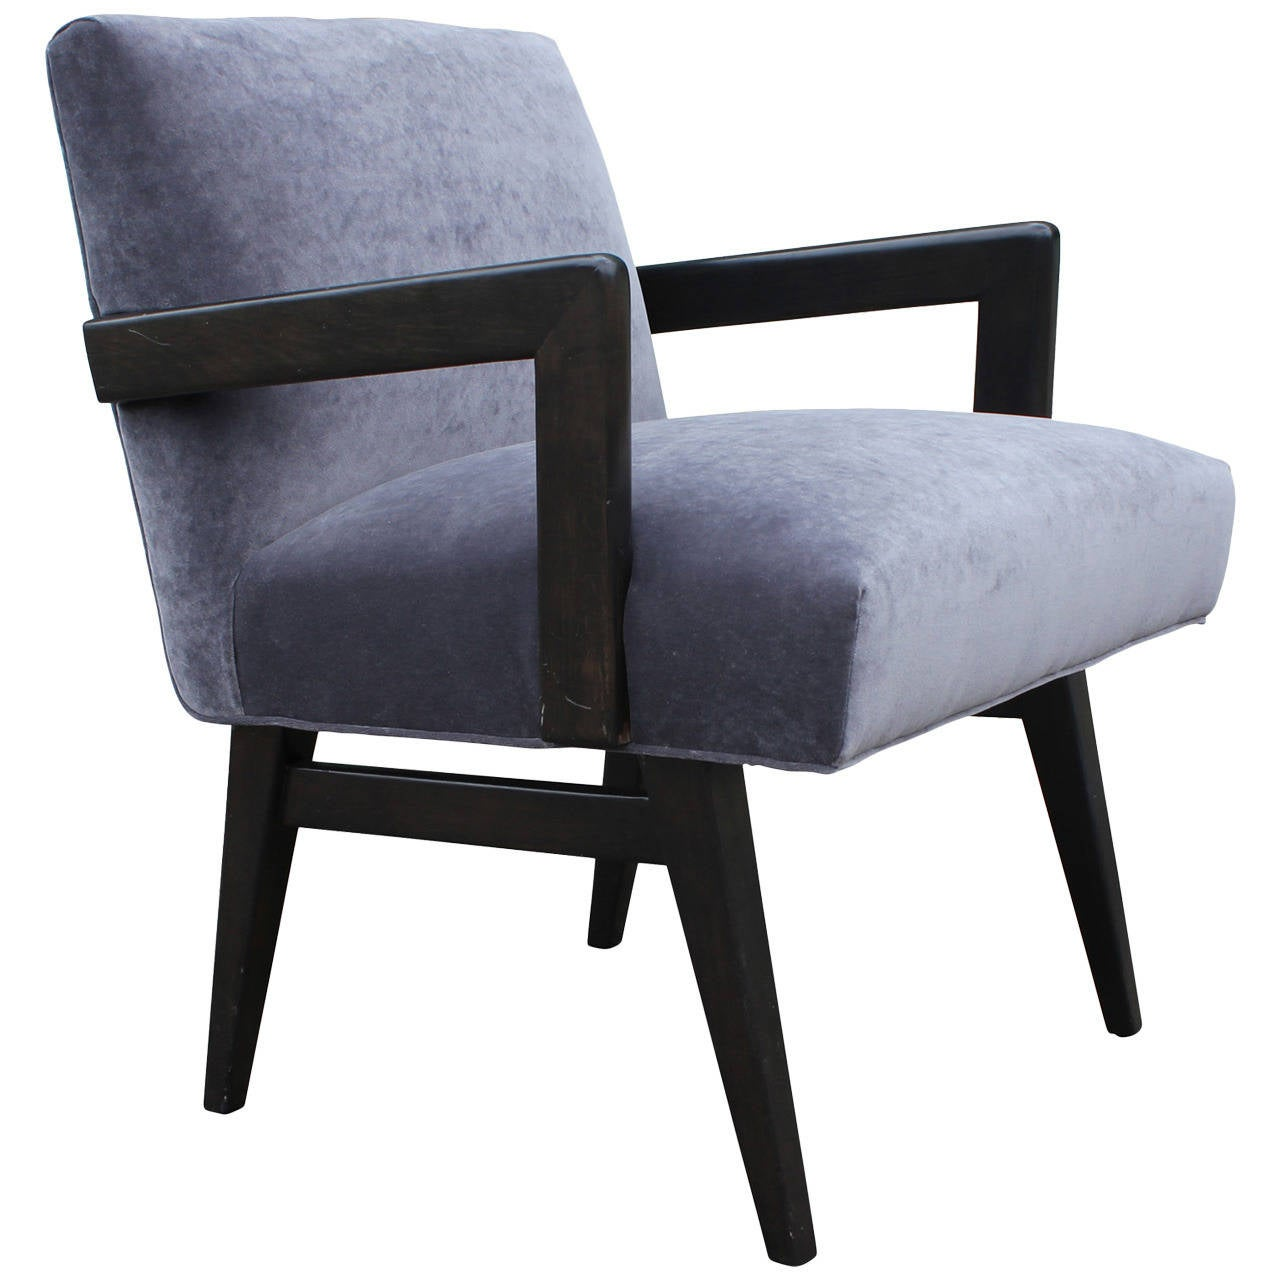 grey modern armchairs walmart lift chairs mid century velvet armchair in the style of